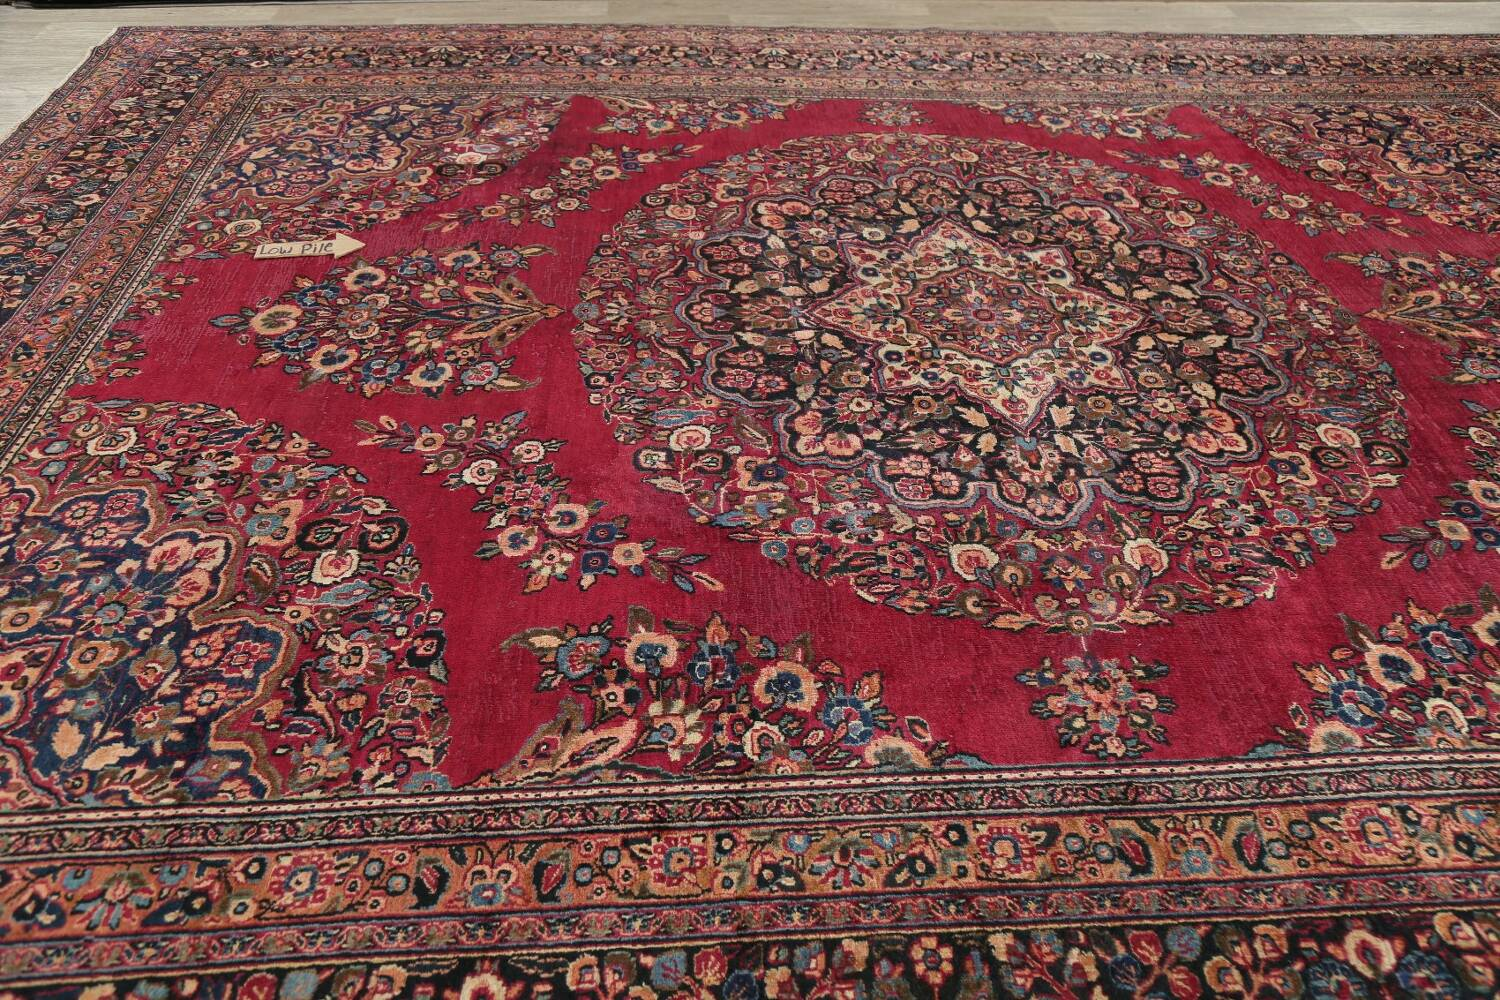 Antique Floral Red Dorokhsh Persian Rug Large 11x14 image 15